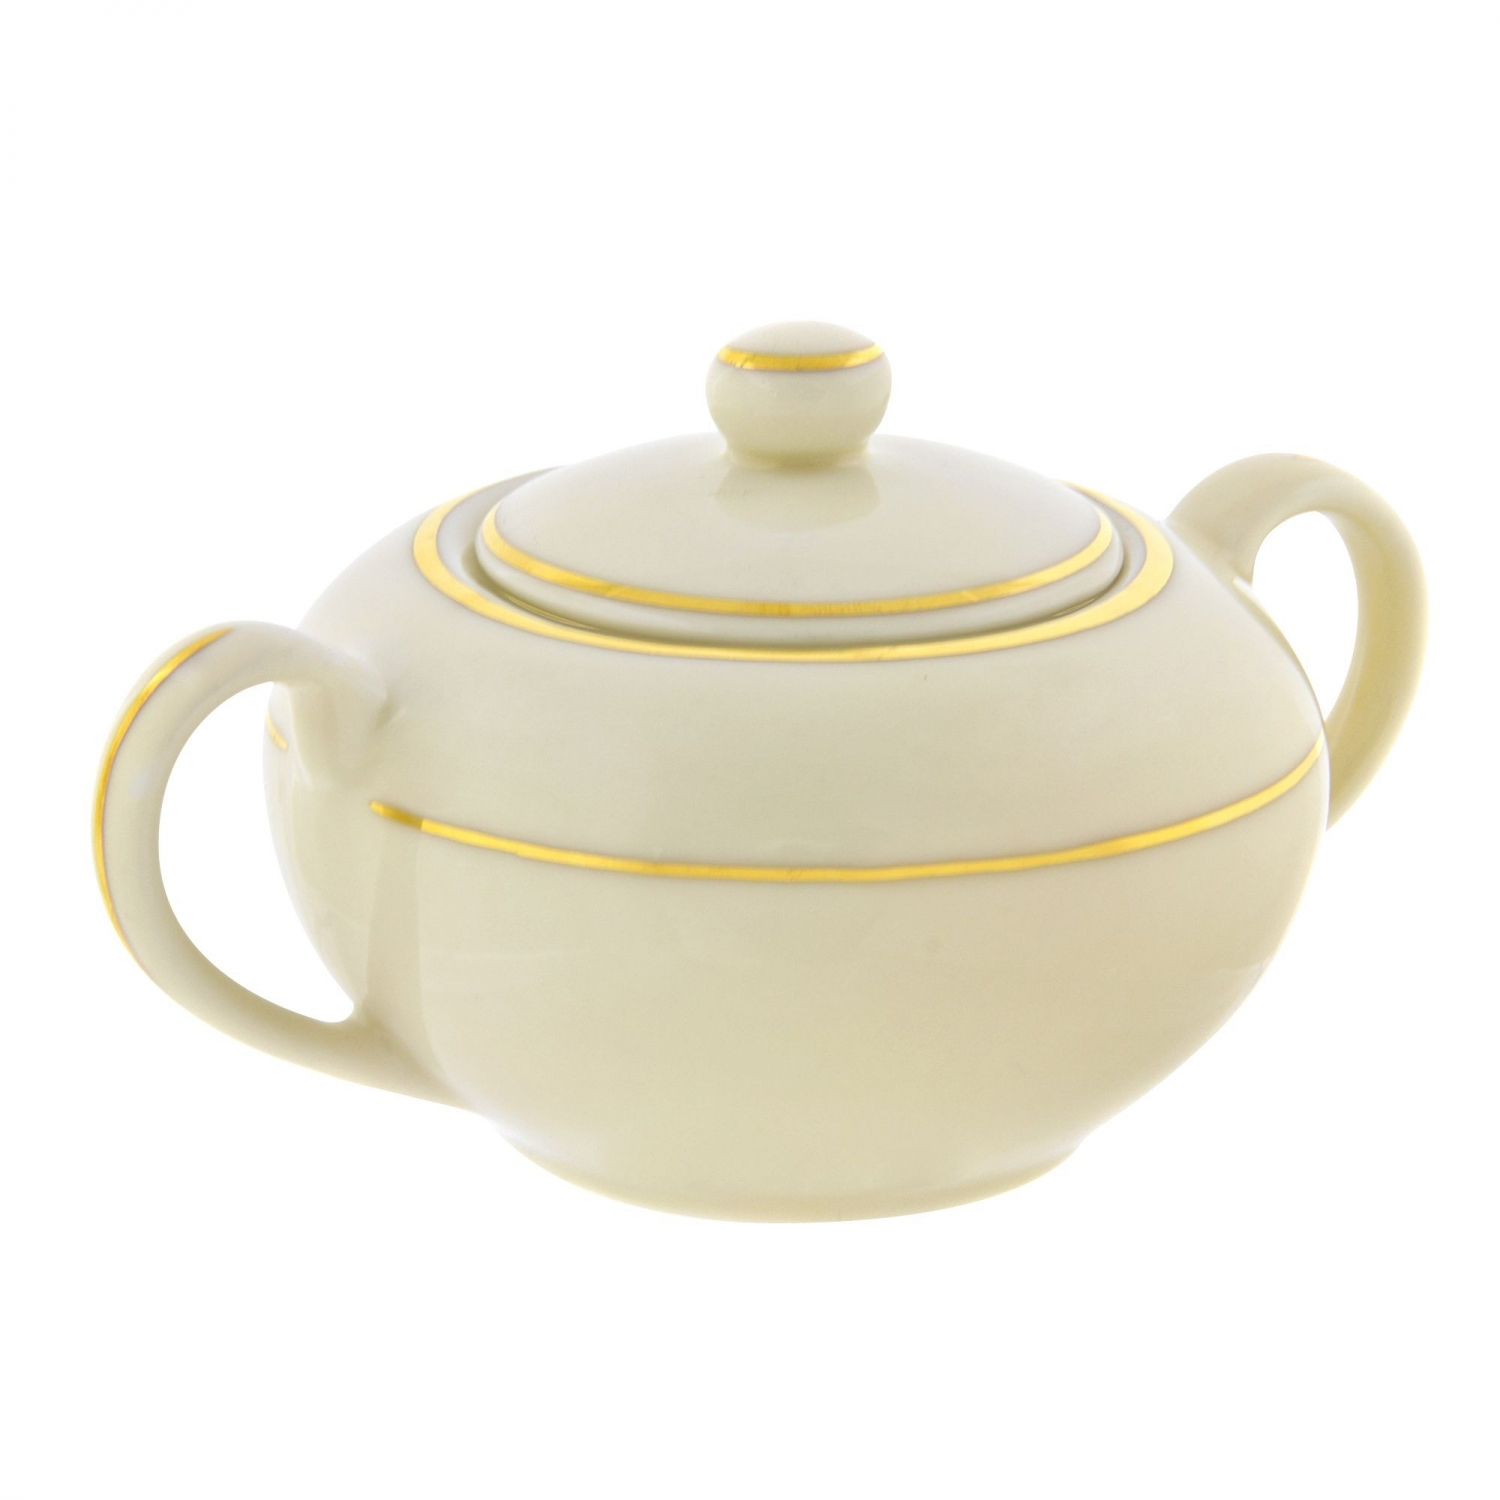 10 Strawberry Street CGLD0018 8 oz. Cream Double Gold Line Sugar Bowl with Lid